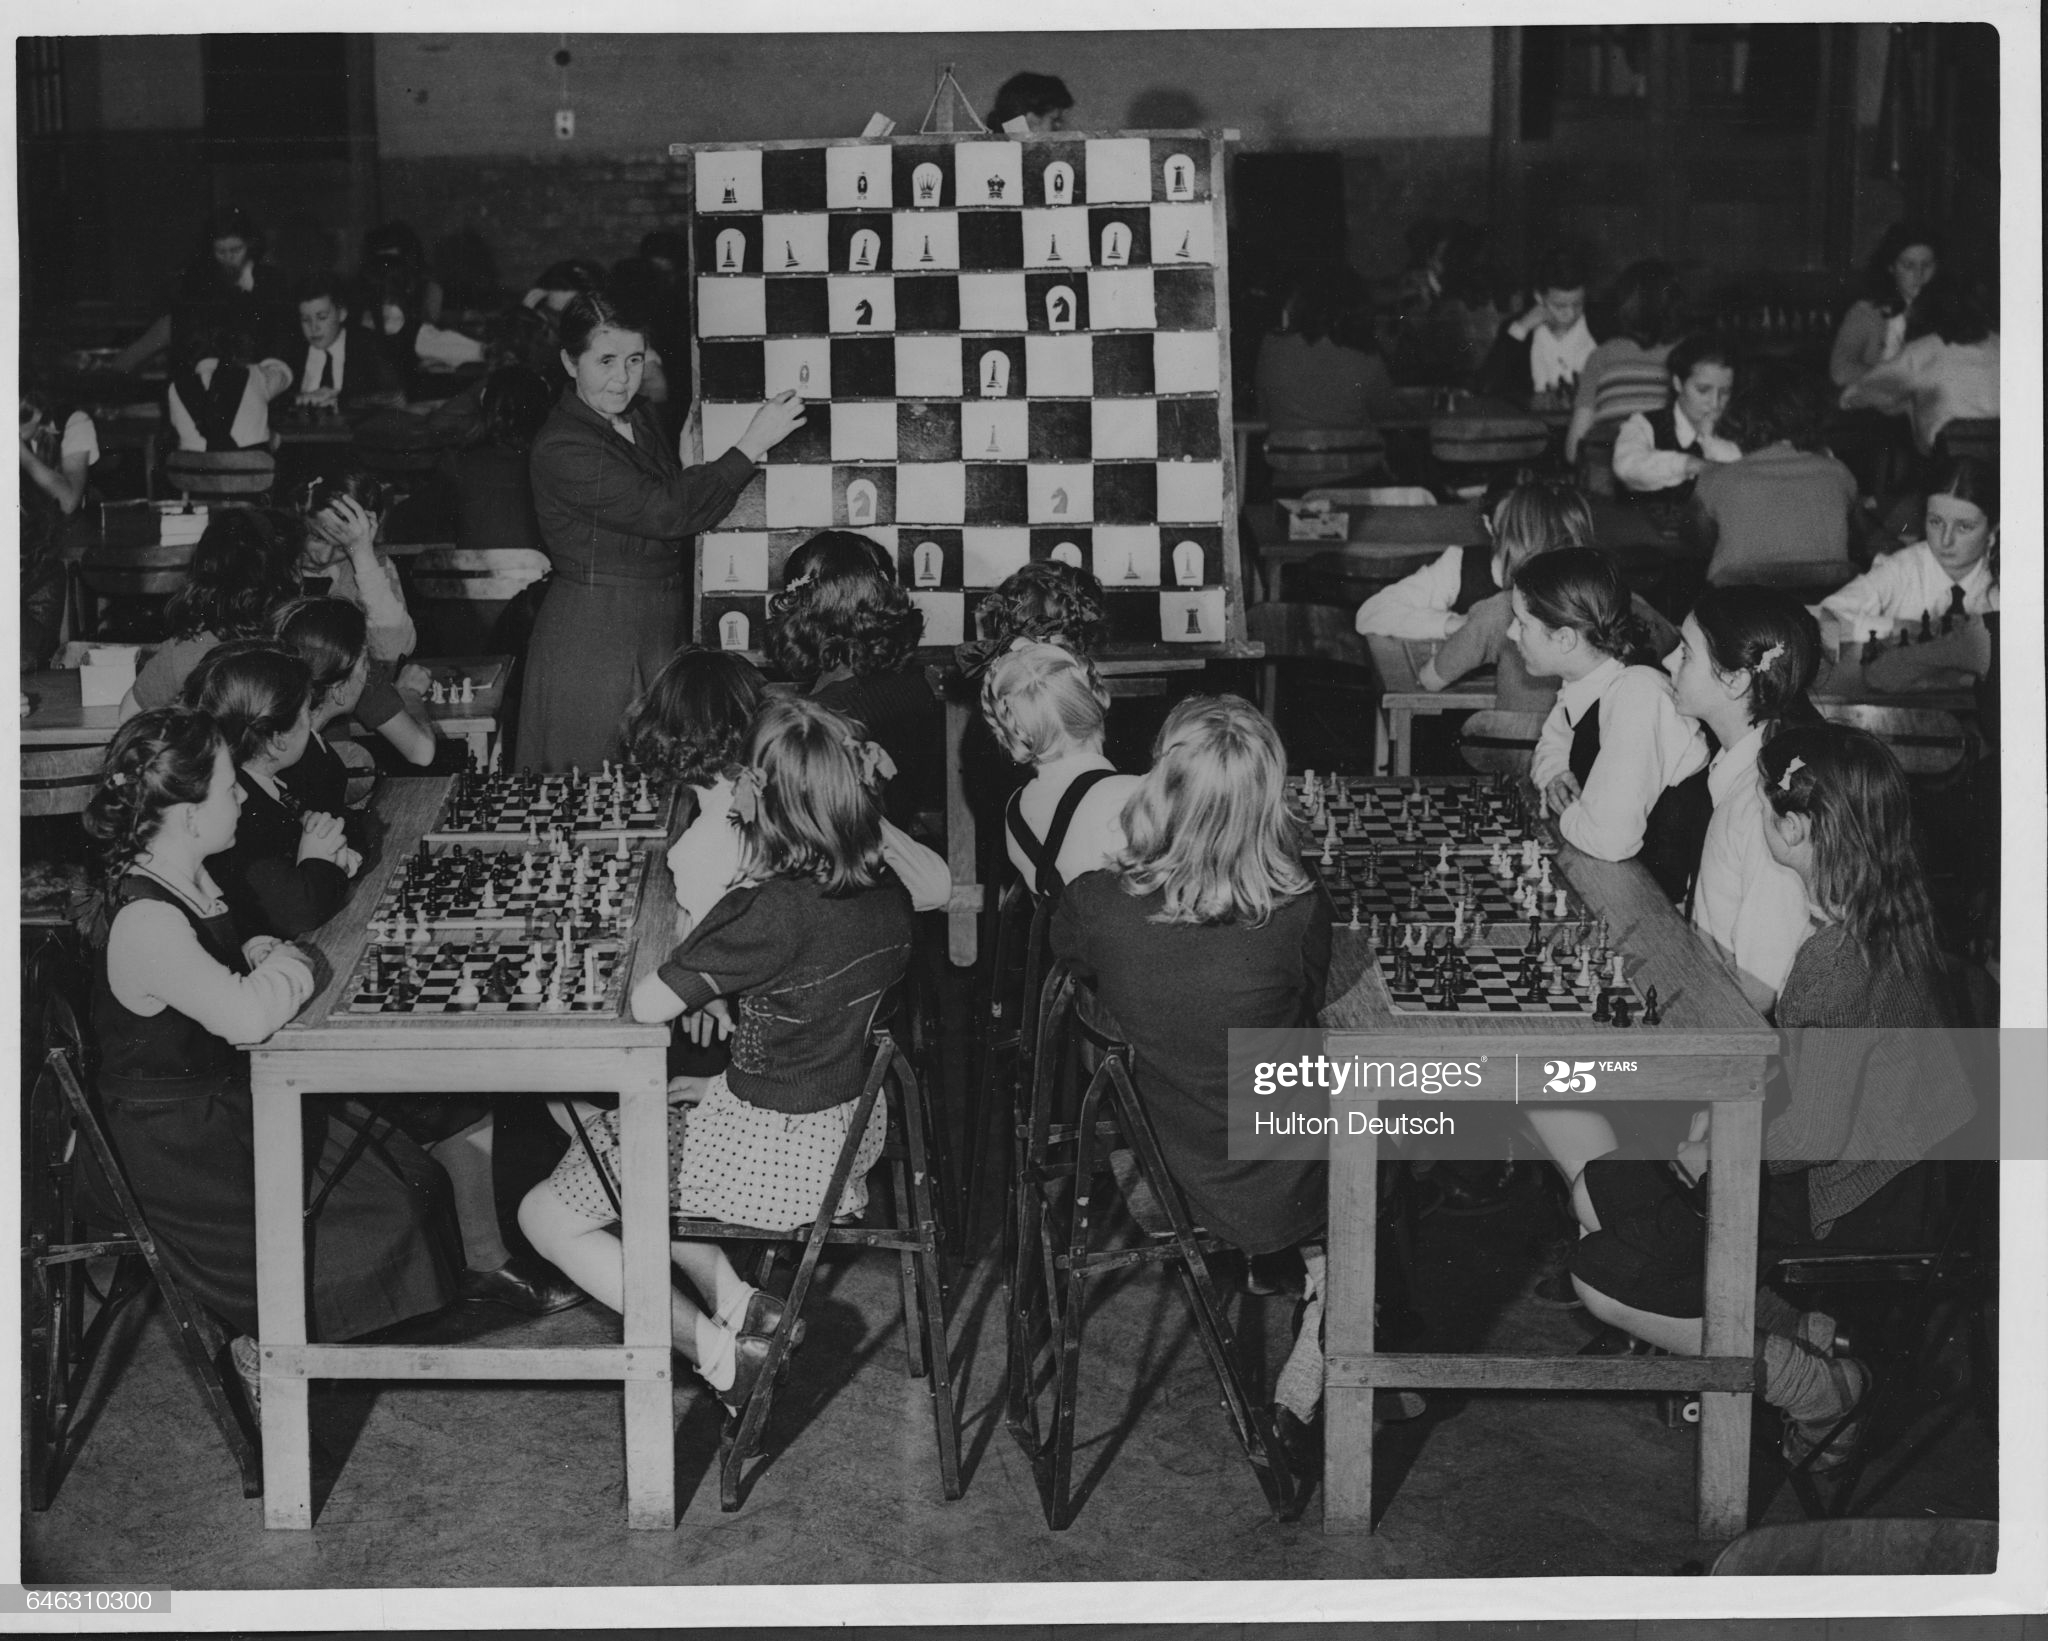 A class of girls listens to their teacher Lucy Anness give a lesson on the game of chess at a school in Bromley, Kent, England, in 1948. Miss Anness, head of the school, believes this is the only girls' school in Britain at this time that teaches chess as part of the curriculum. (Photo by © Hulton-Deutsch Collection/CORBIS/Corbis via Getty Images)